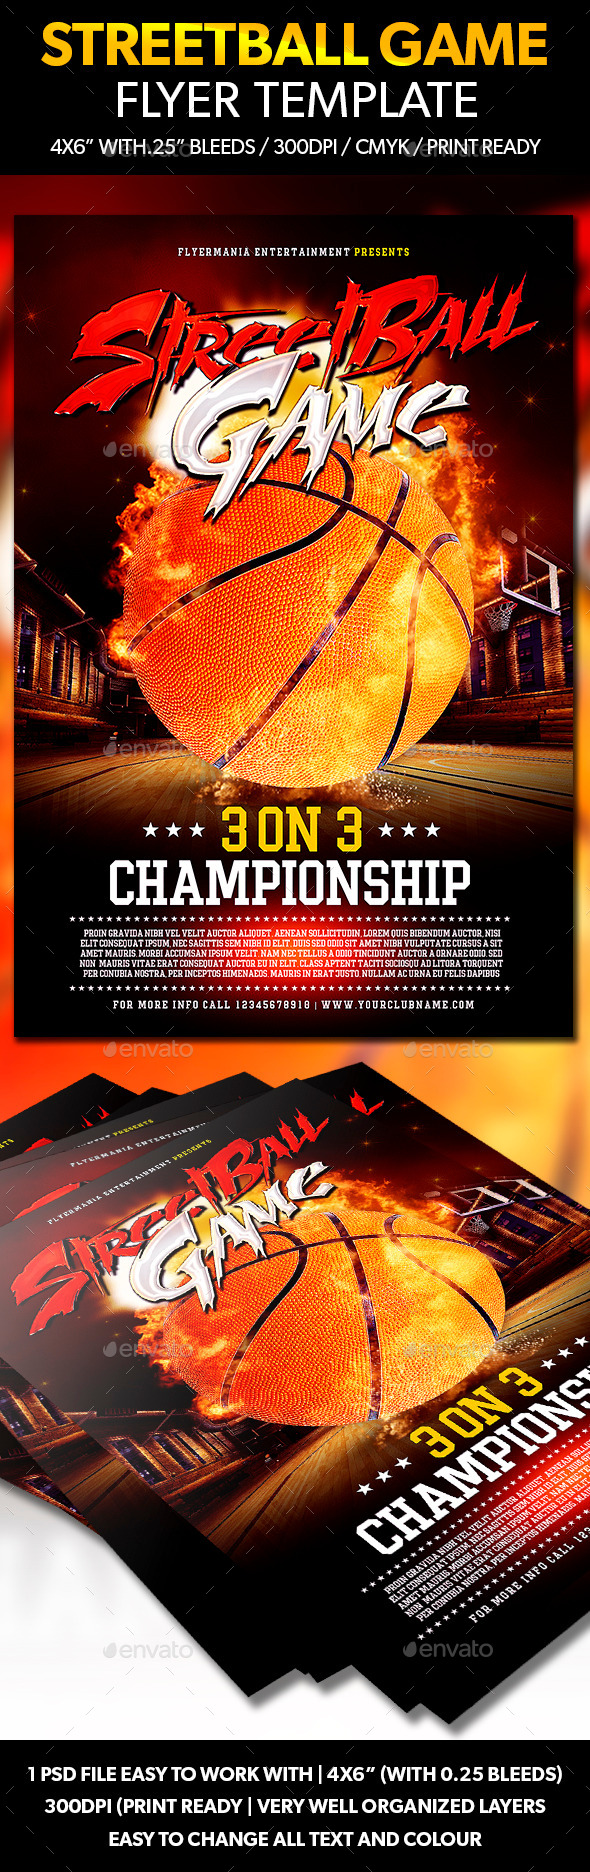 GraphicRiver Streetball Game Flyer Template 10780322